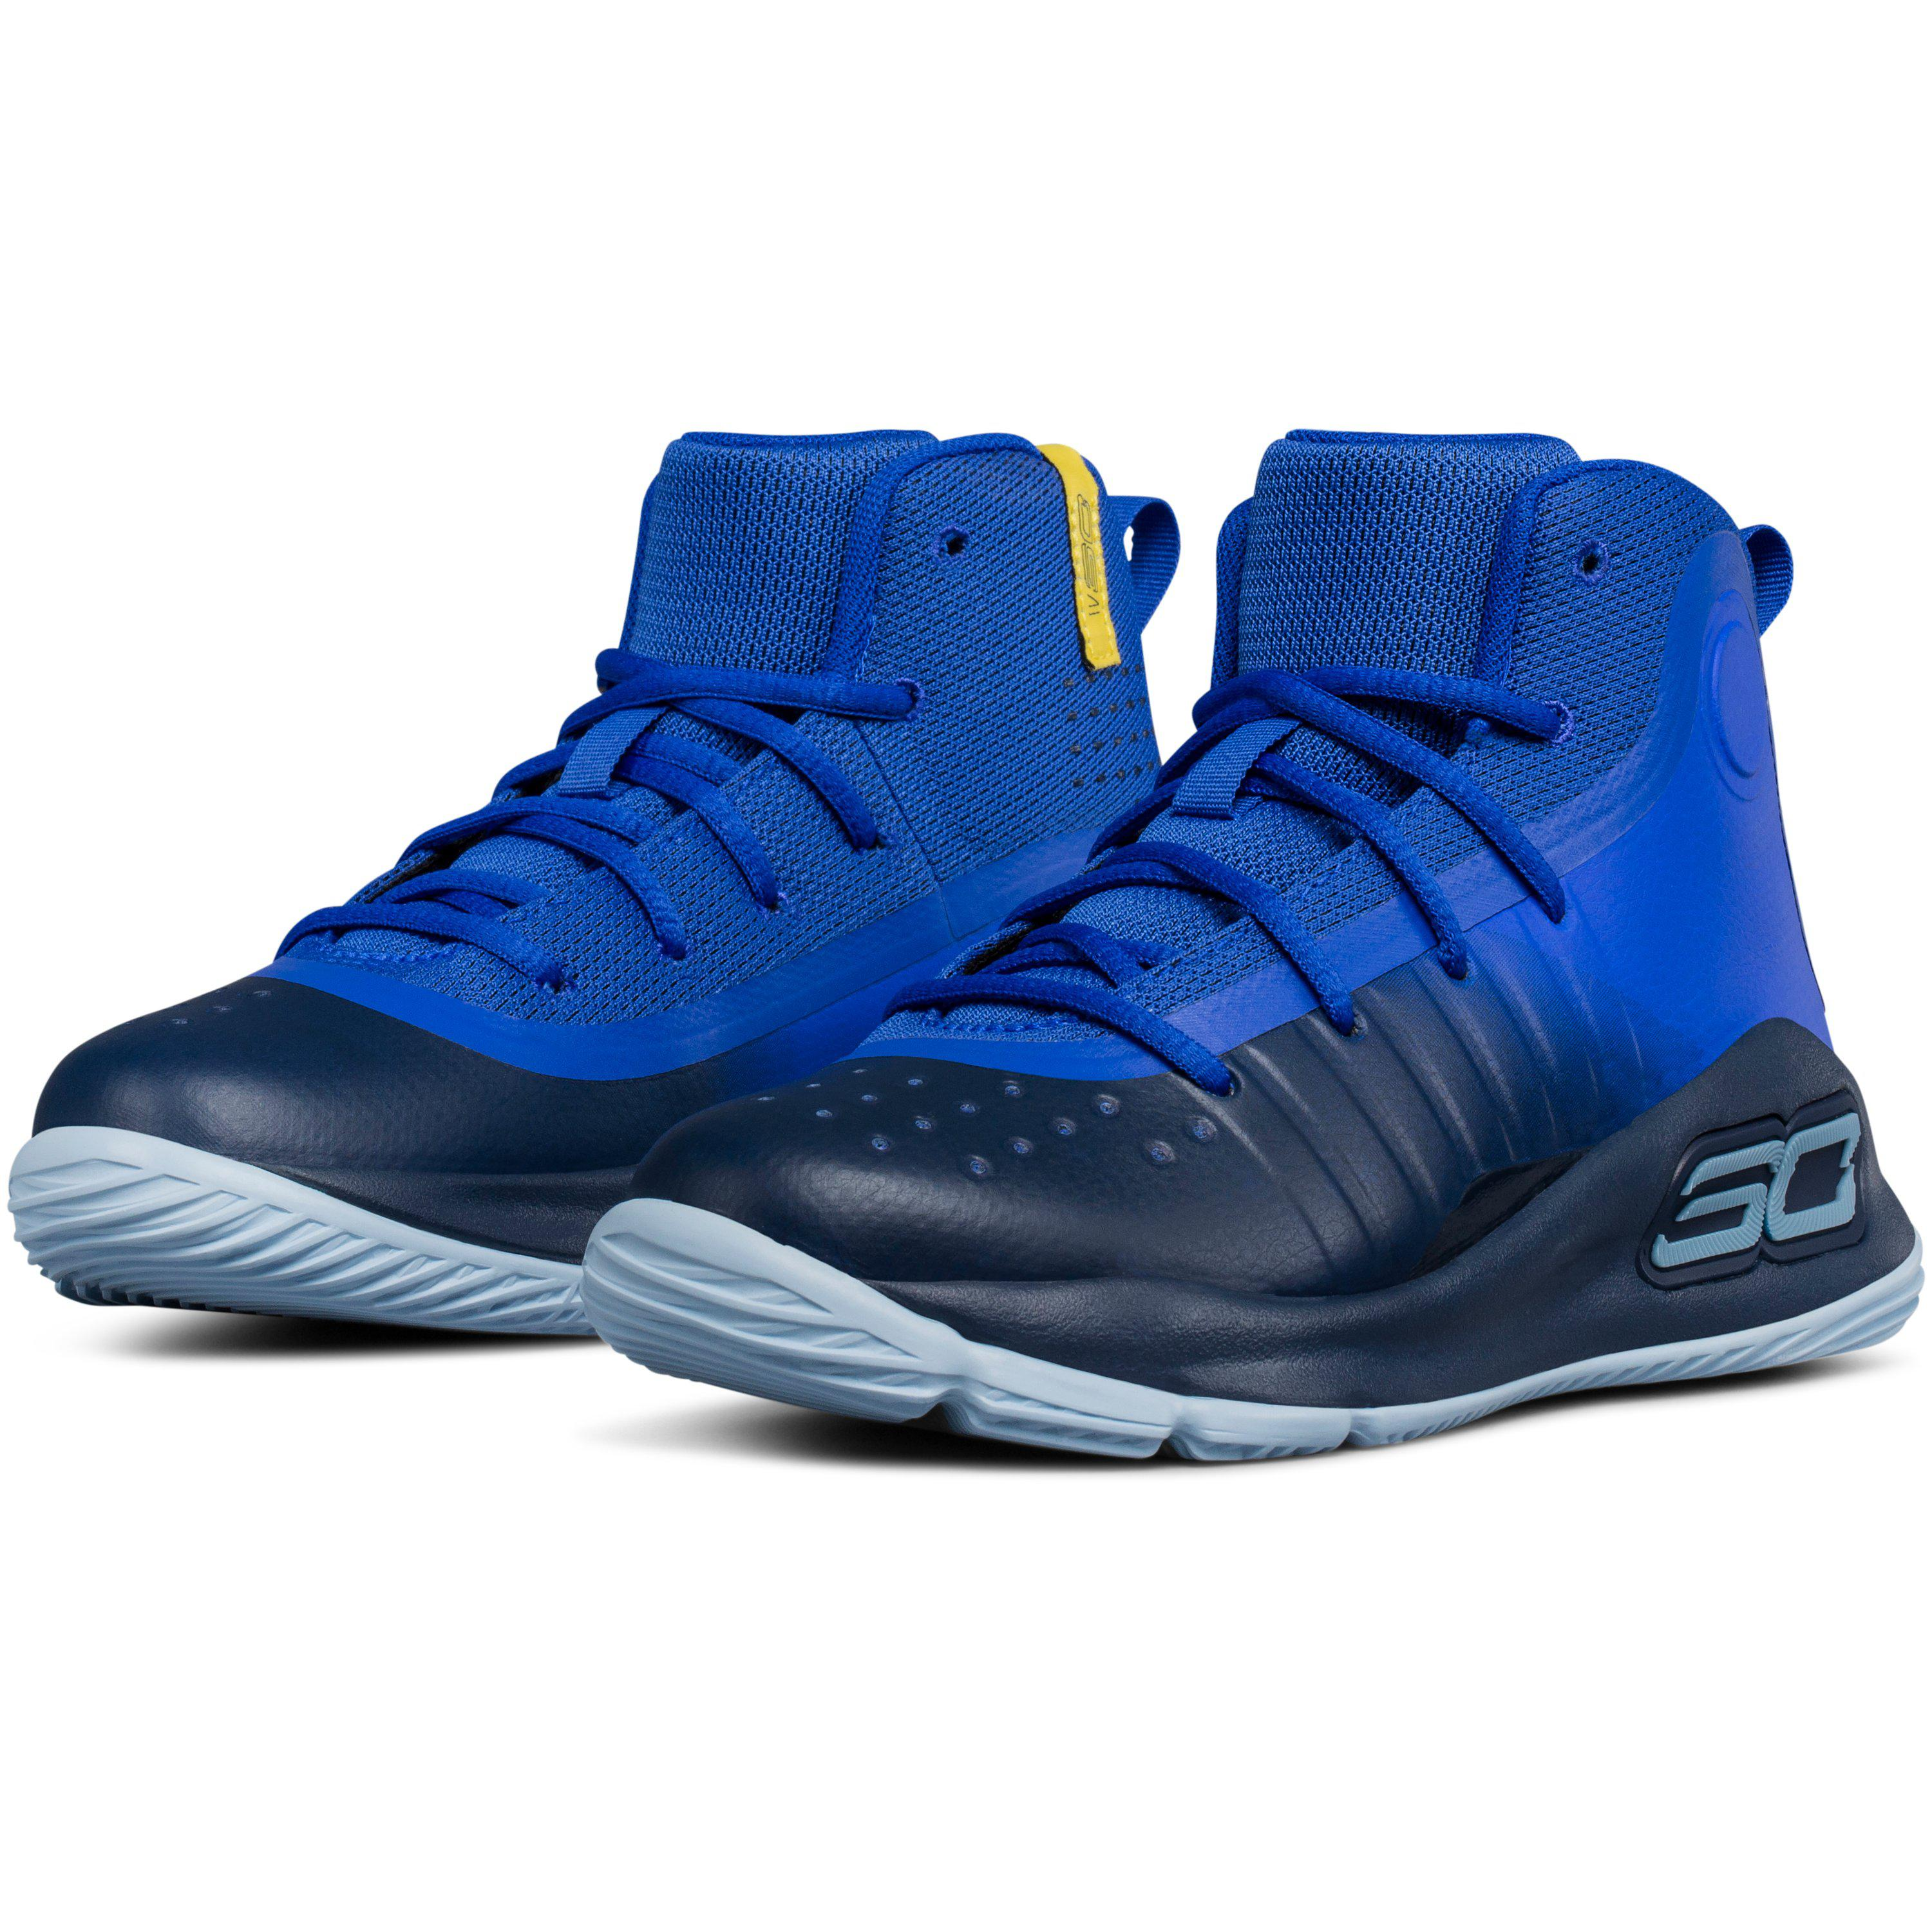 d3e058132b7 Under Armour Pre-school Ua Curry 4 Mid Basketball Shoes in Blue for ...